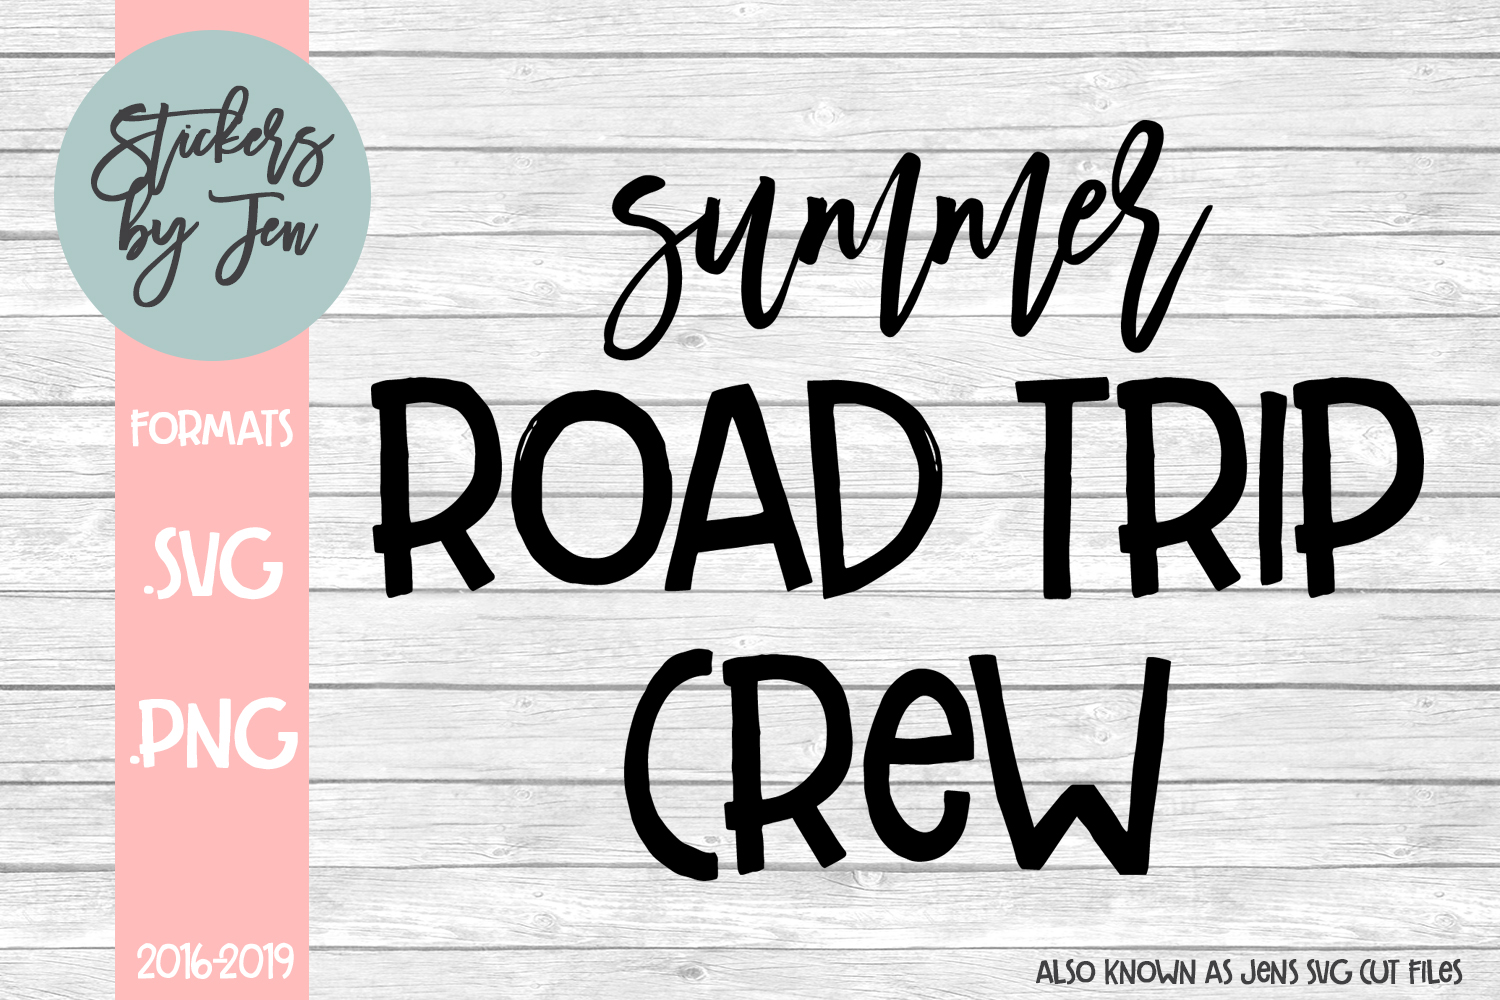 Summer Road Trip Crew svg cut file example image 1